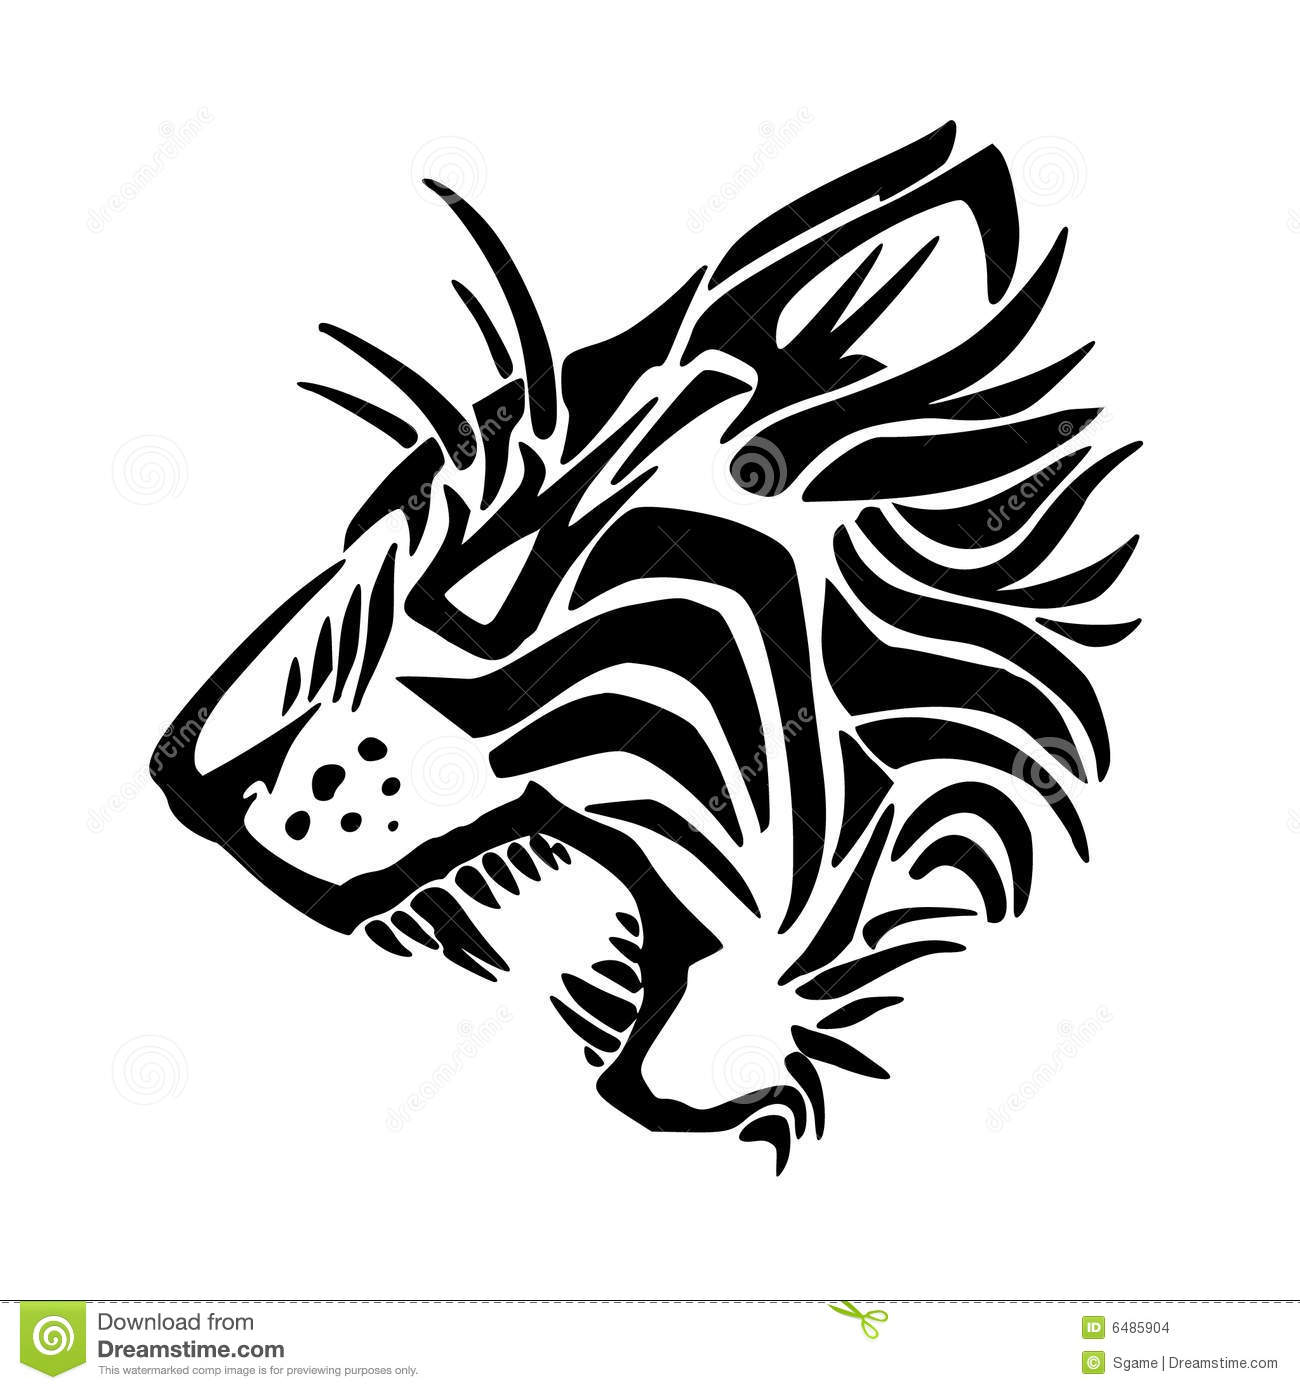 Tiger silhouette isolated on white background.